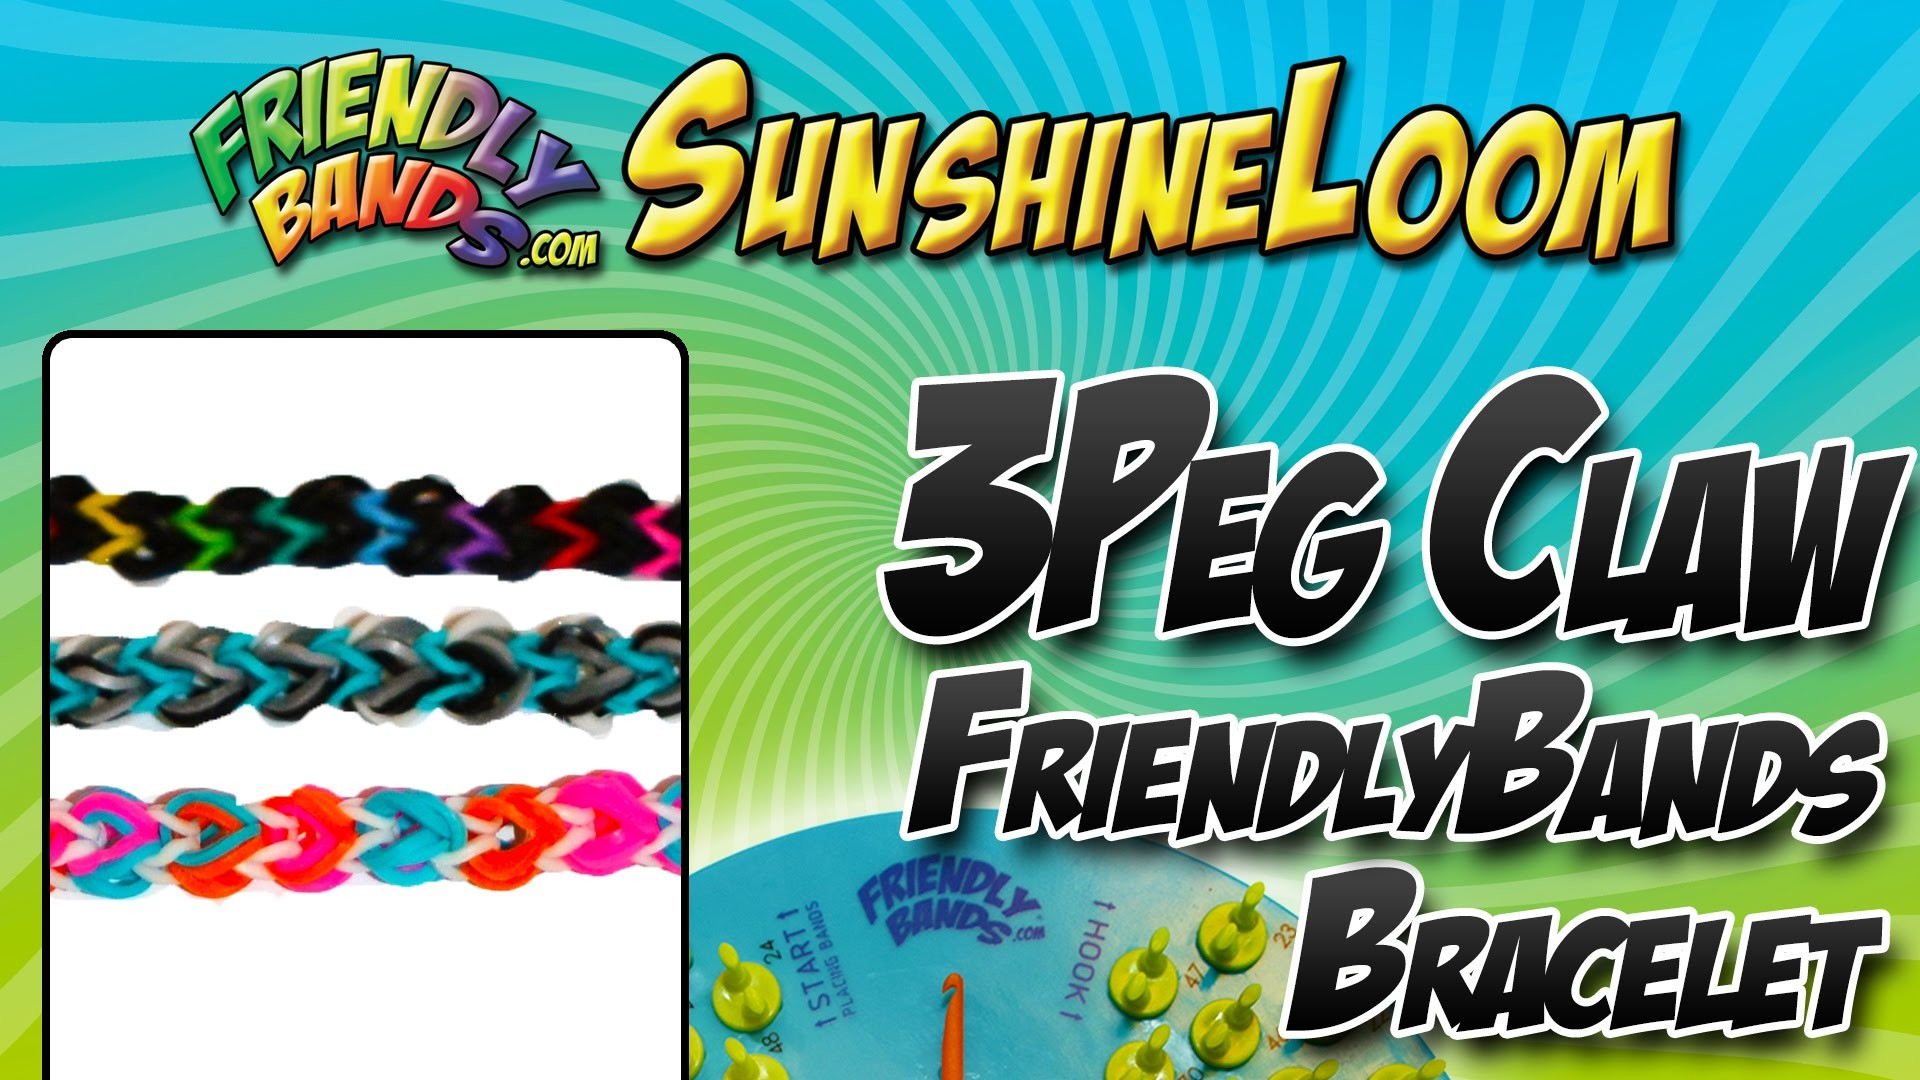 How to make a FriendlyBands SunshineLoom - 3Peg Claw Bracelet Tutorial